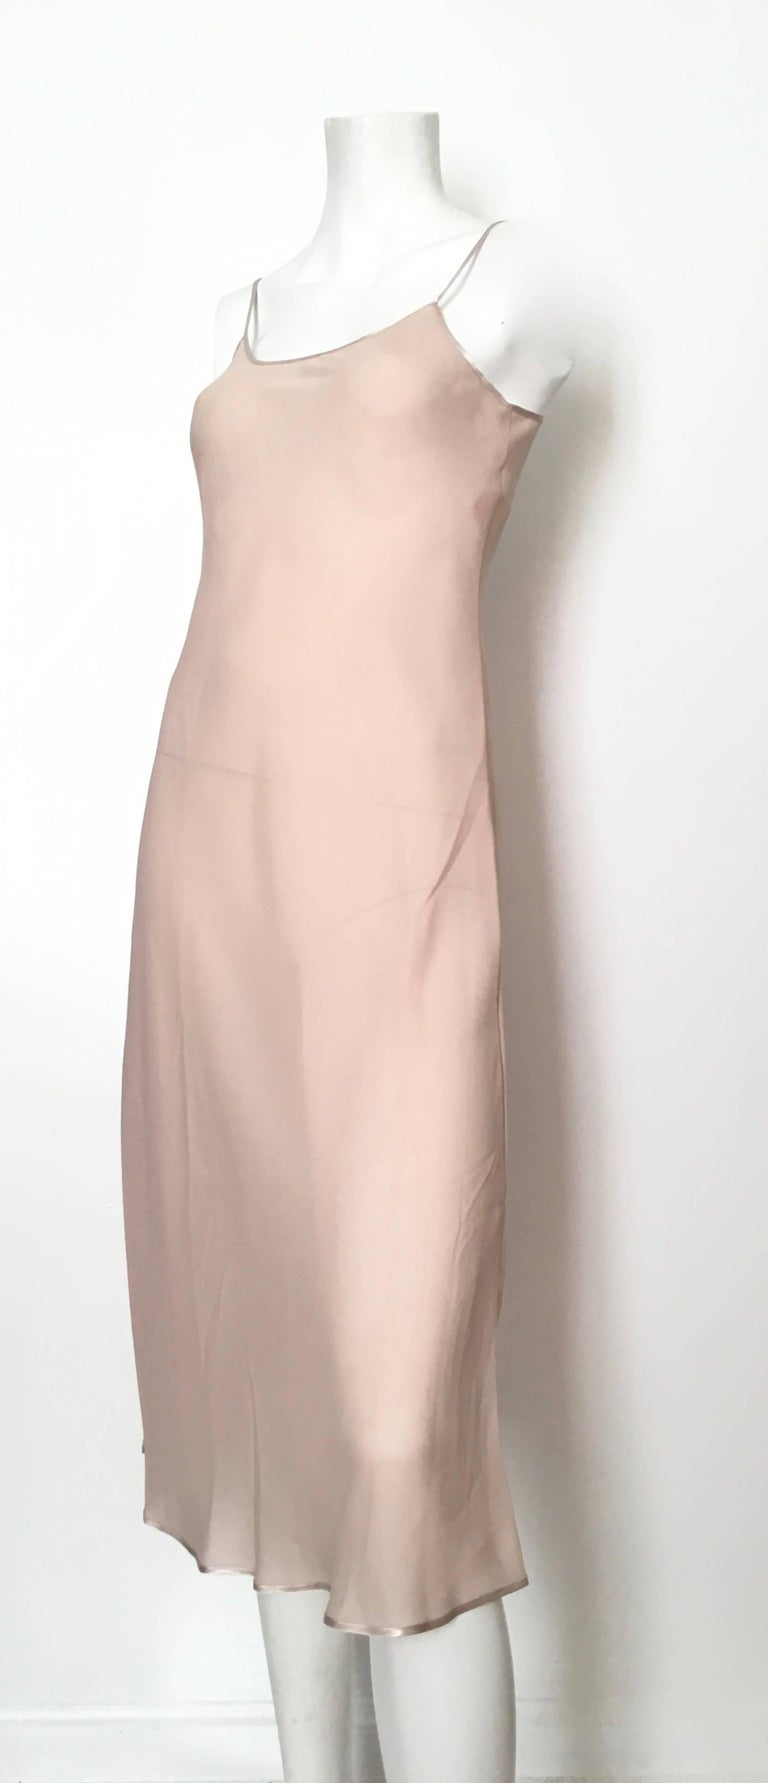 zimmerman copper lace mirror sequin gown size 4  6  at 1stdibs